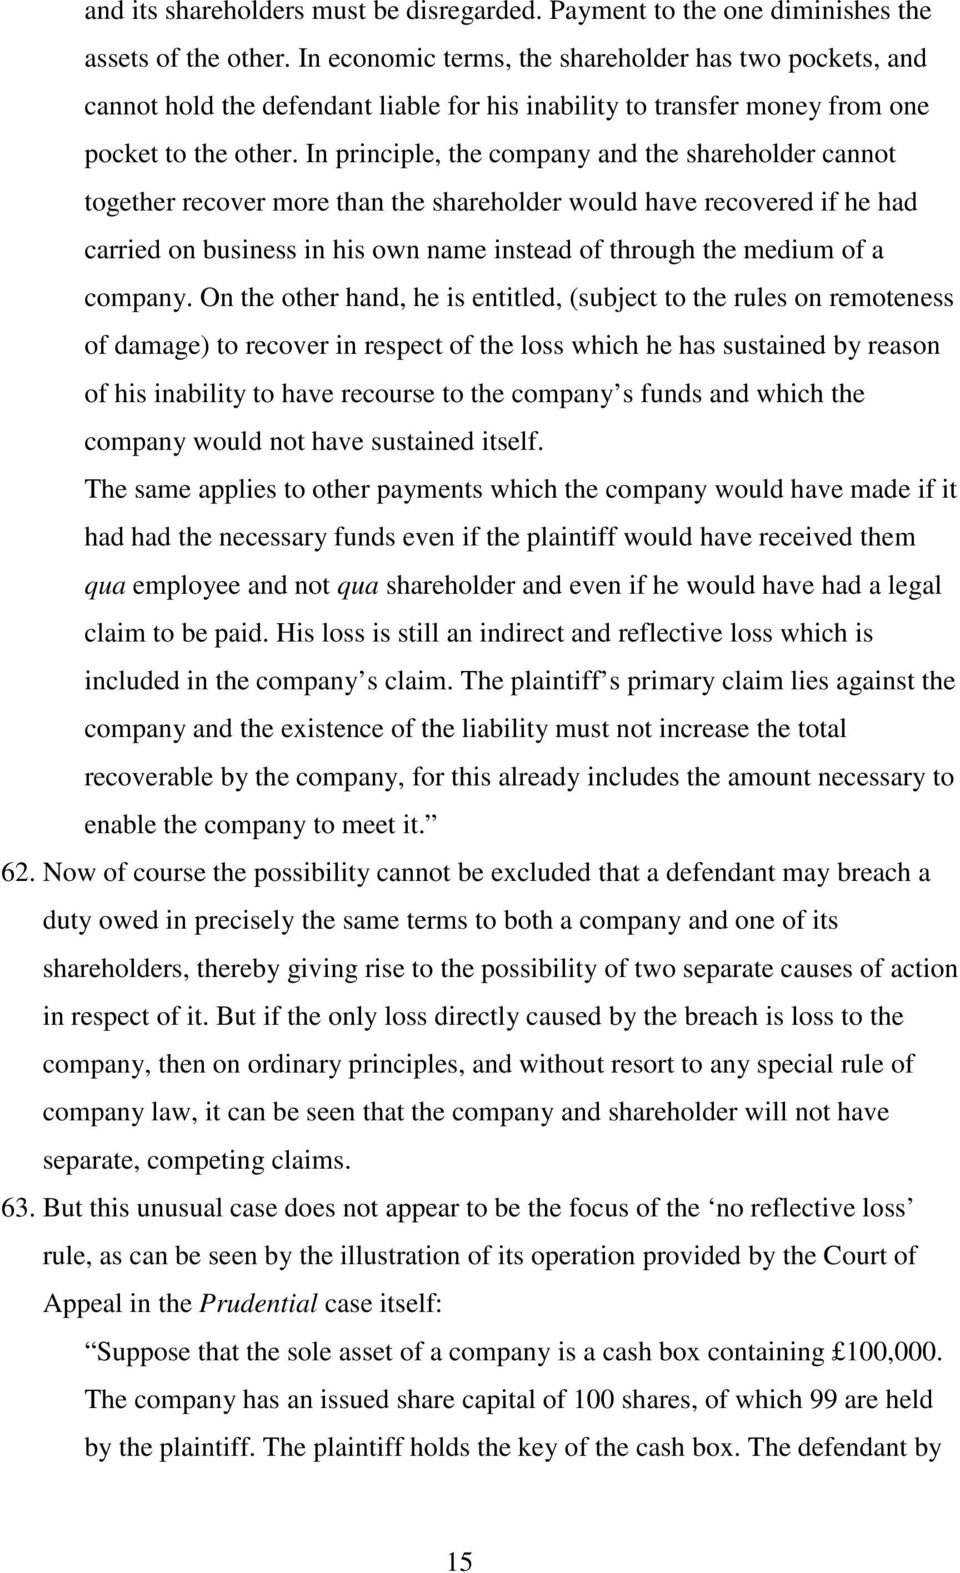 In principle, the company and the shareholder cannot together recover more than the shareholder would have recovered if he had carried on business in his own name instead of through the medium of a